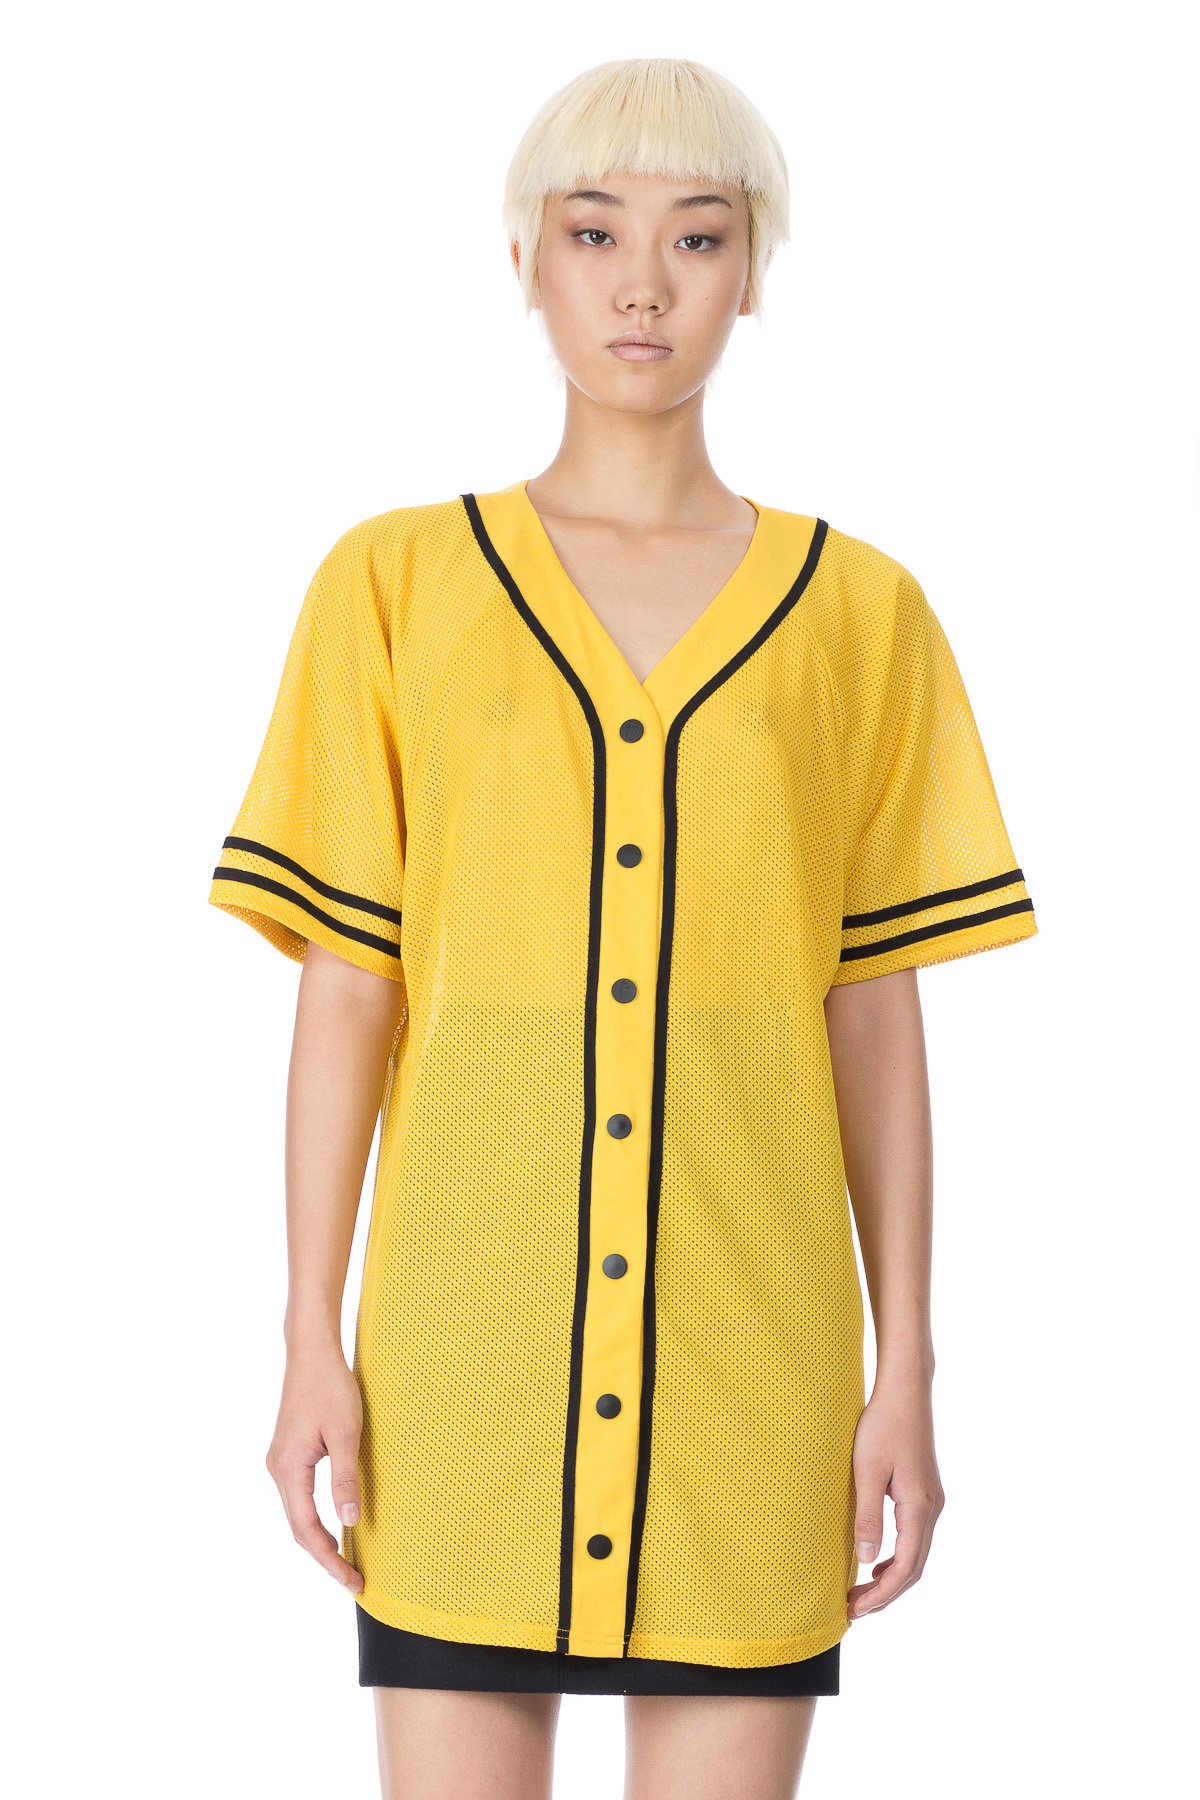 RIHANNA FOR RIVER ISLAND MESH BASEBALL SHIRT - WOMEN - TOPS - RIHANNA FOR RIVER ISLAND